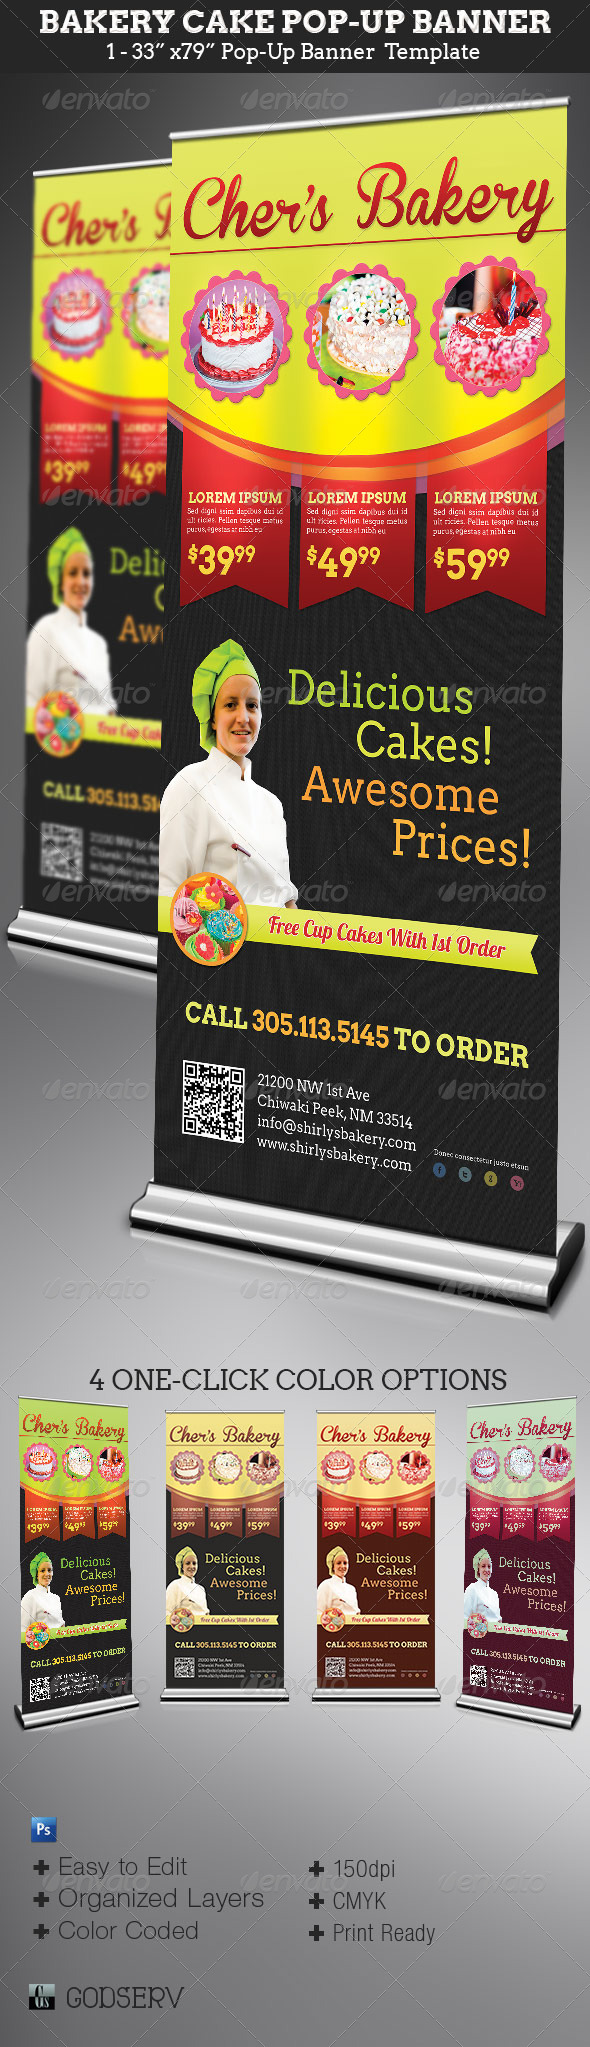 GraphicRiver Bakery Cake Pop-Up Banner Template 6523692